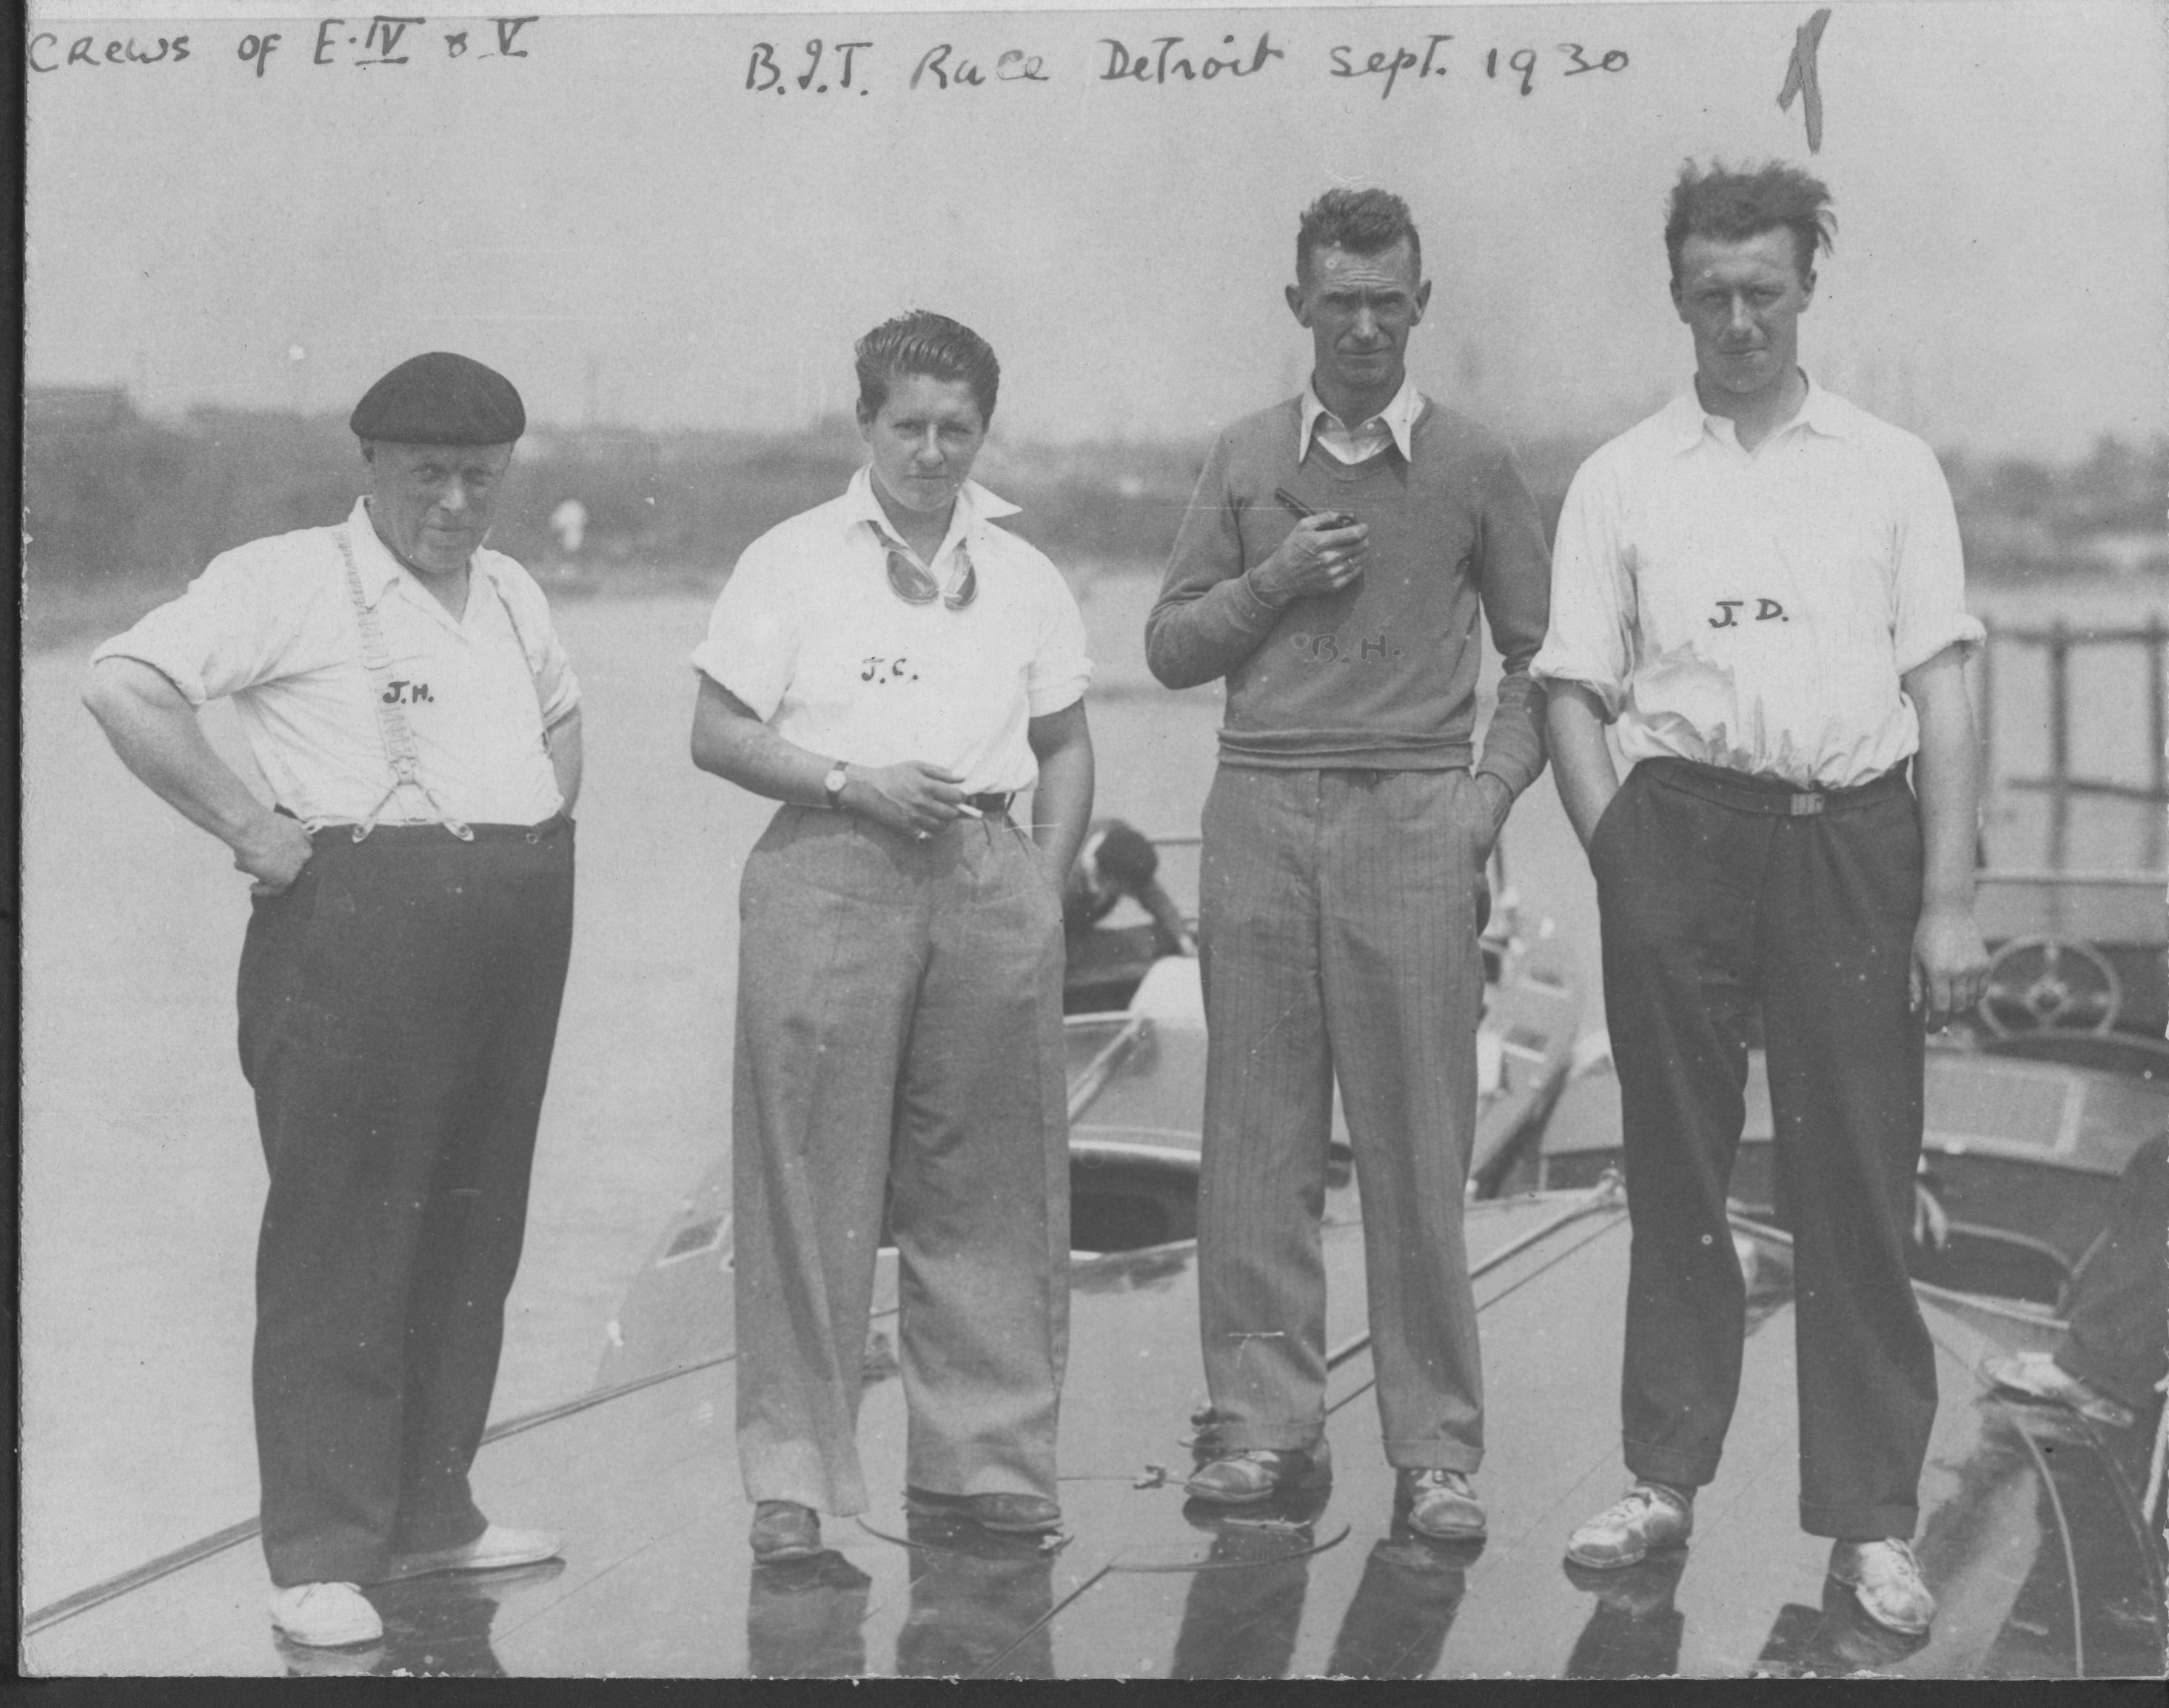 Crew of Estelle IV and V, British International Trophy race Detroit Sept. 1930